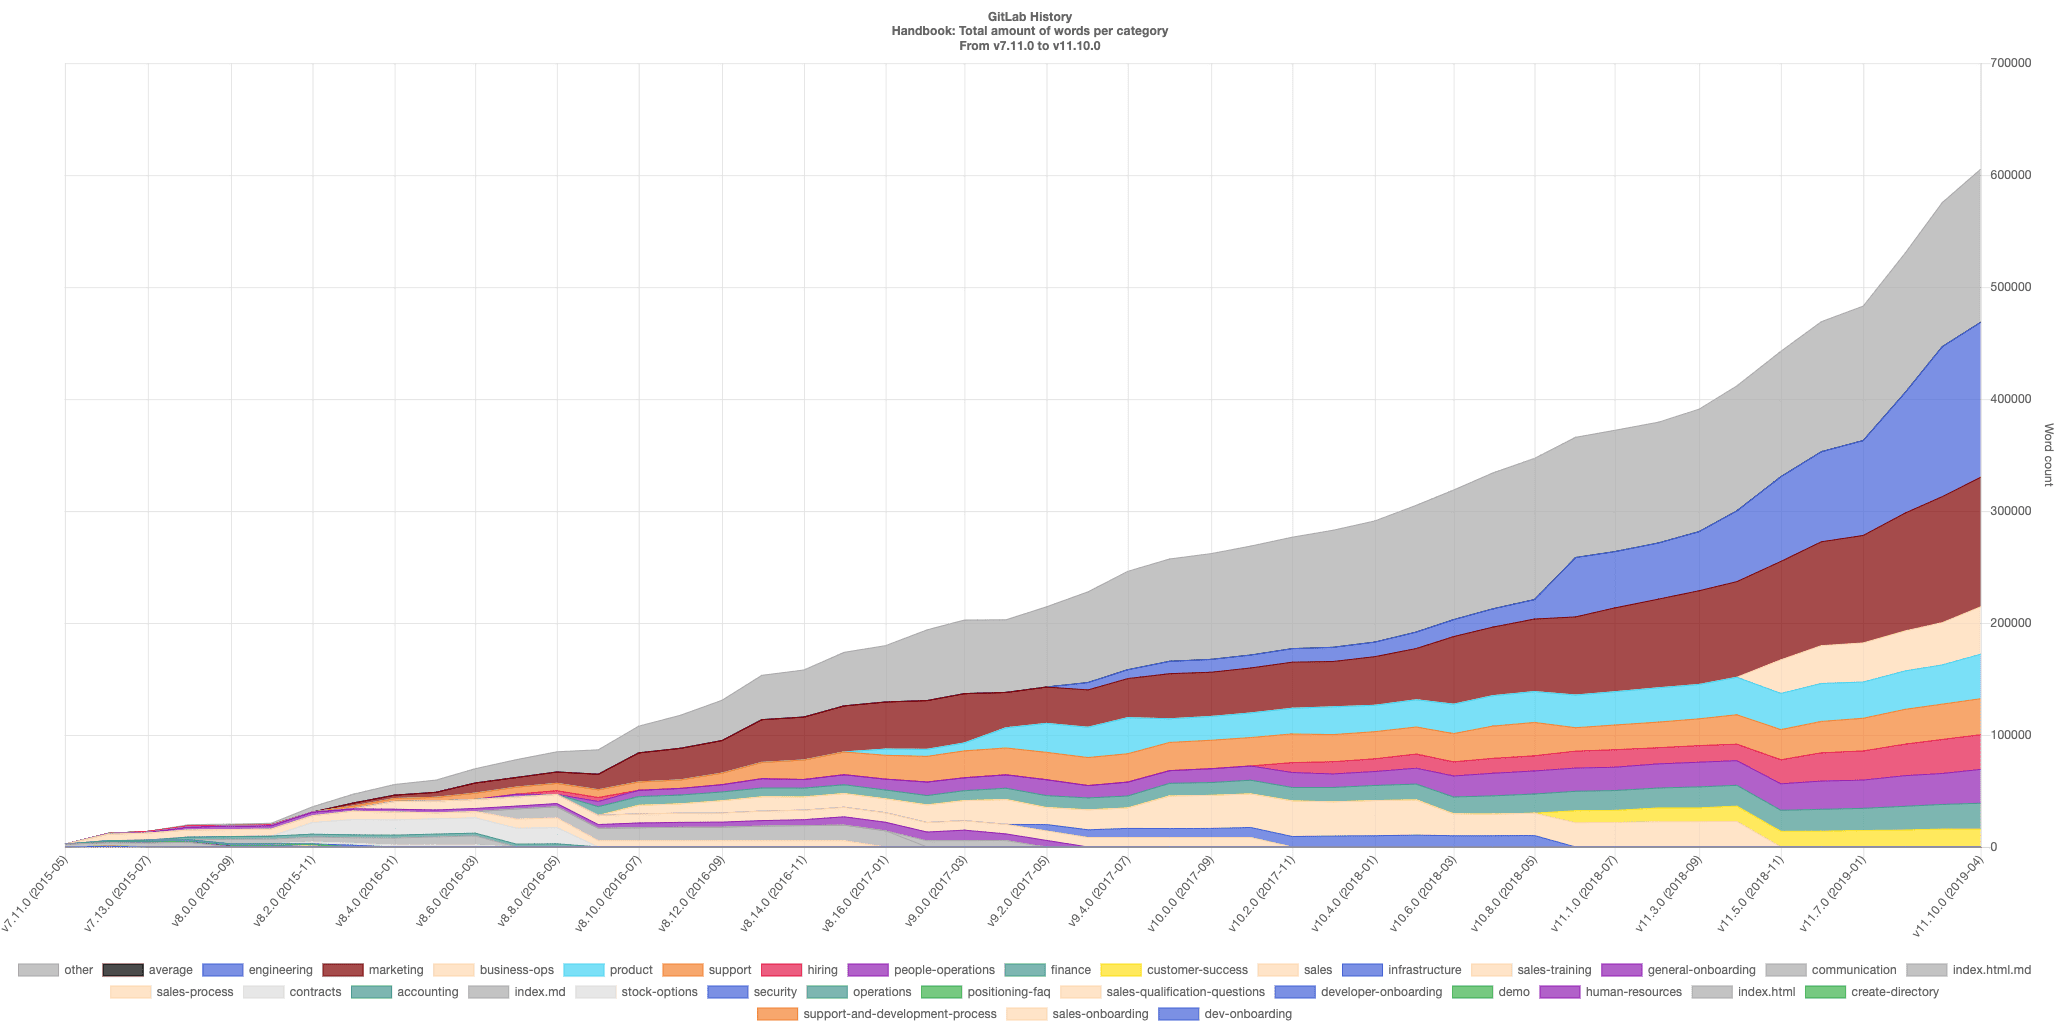 Graph showing the growth of the handbook over time (May 2015 - April 2019)